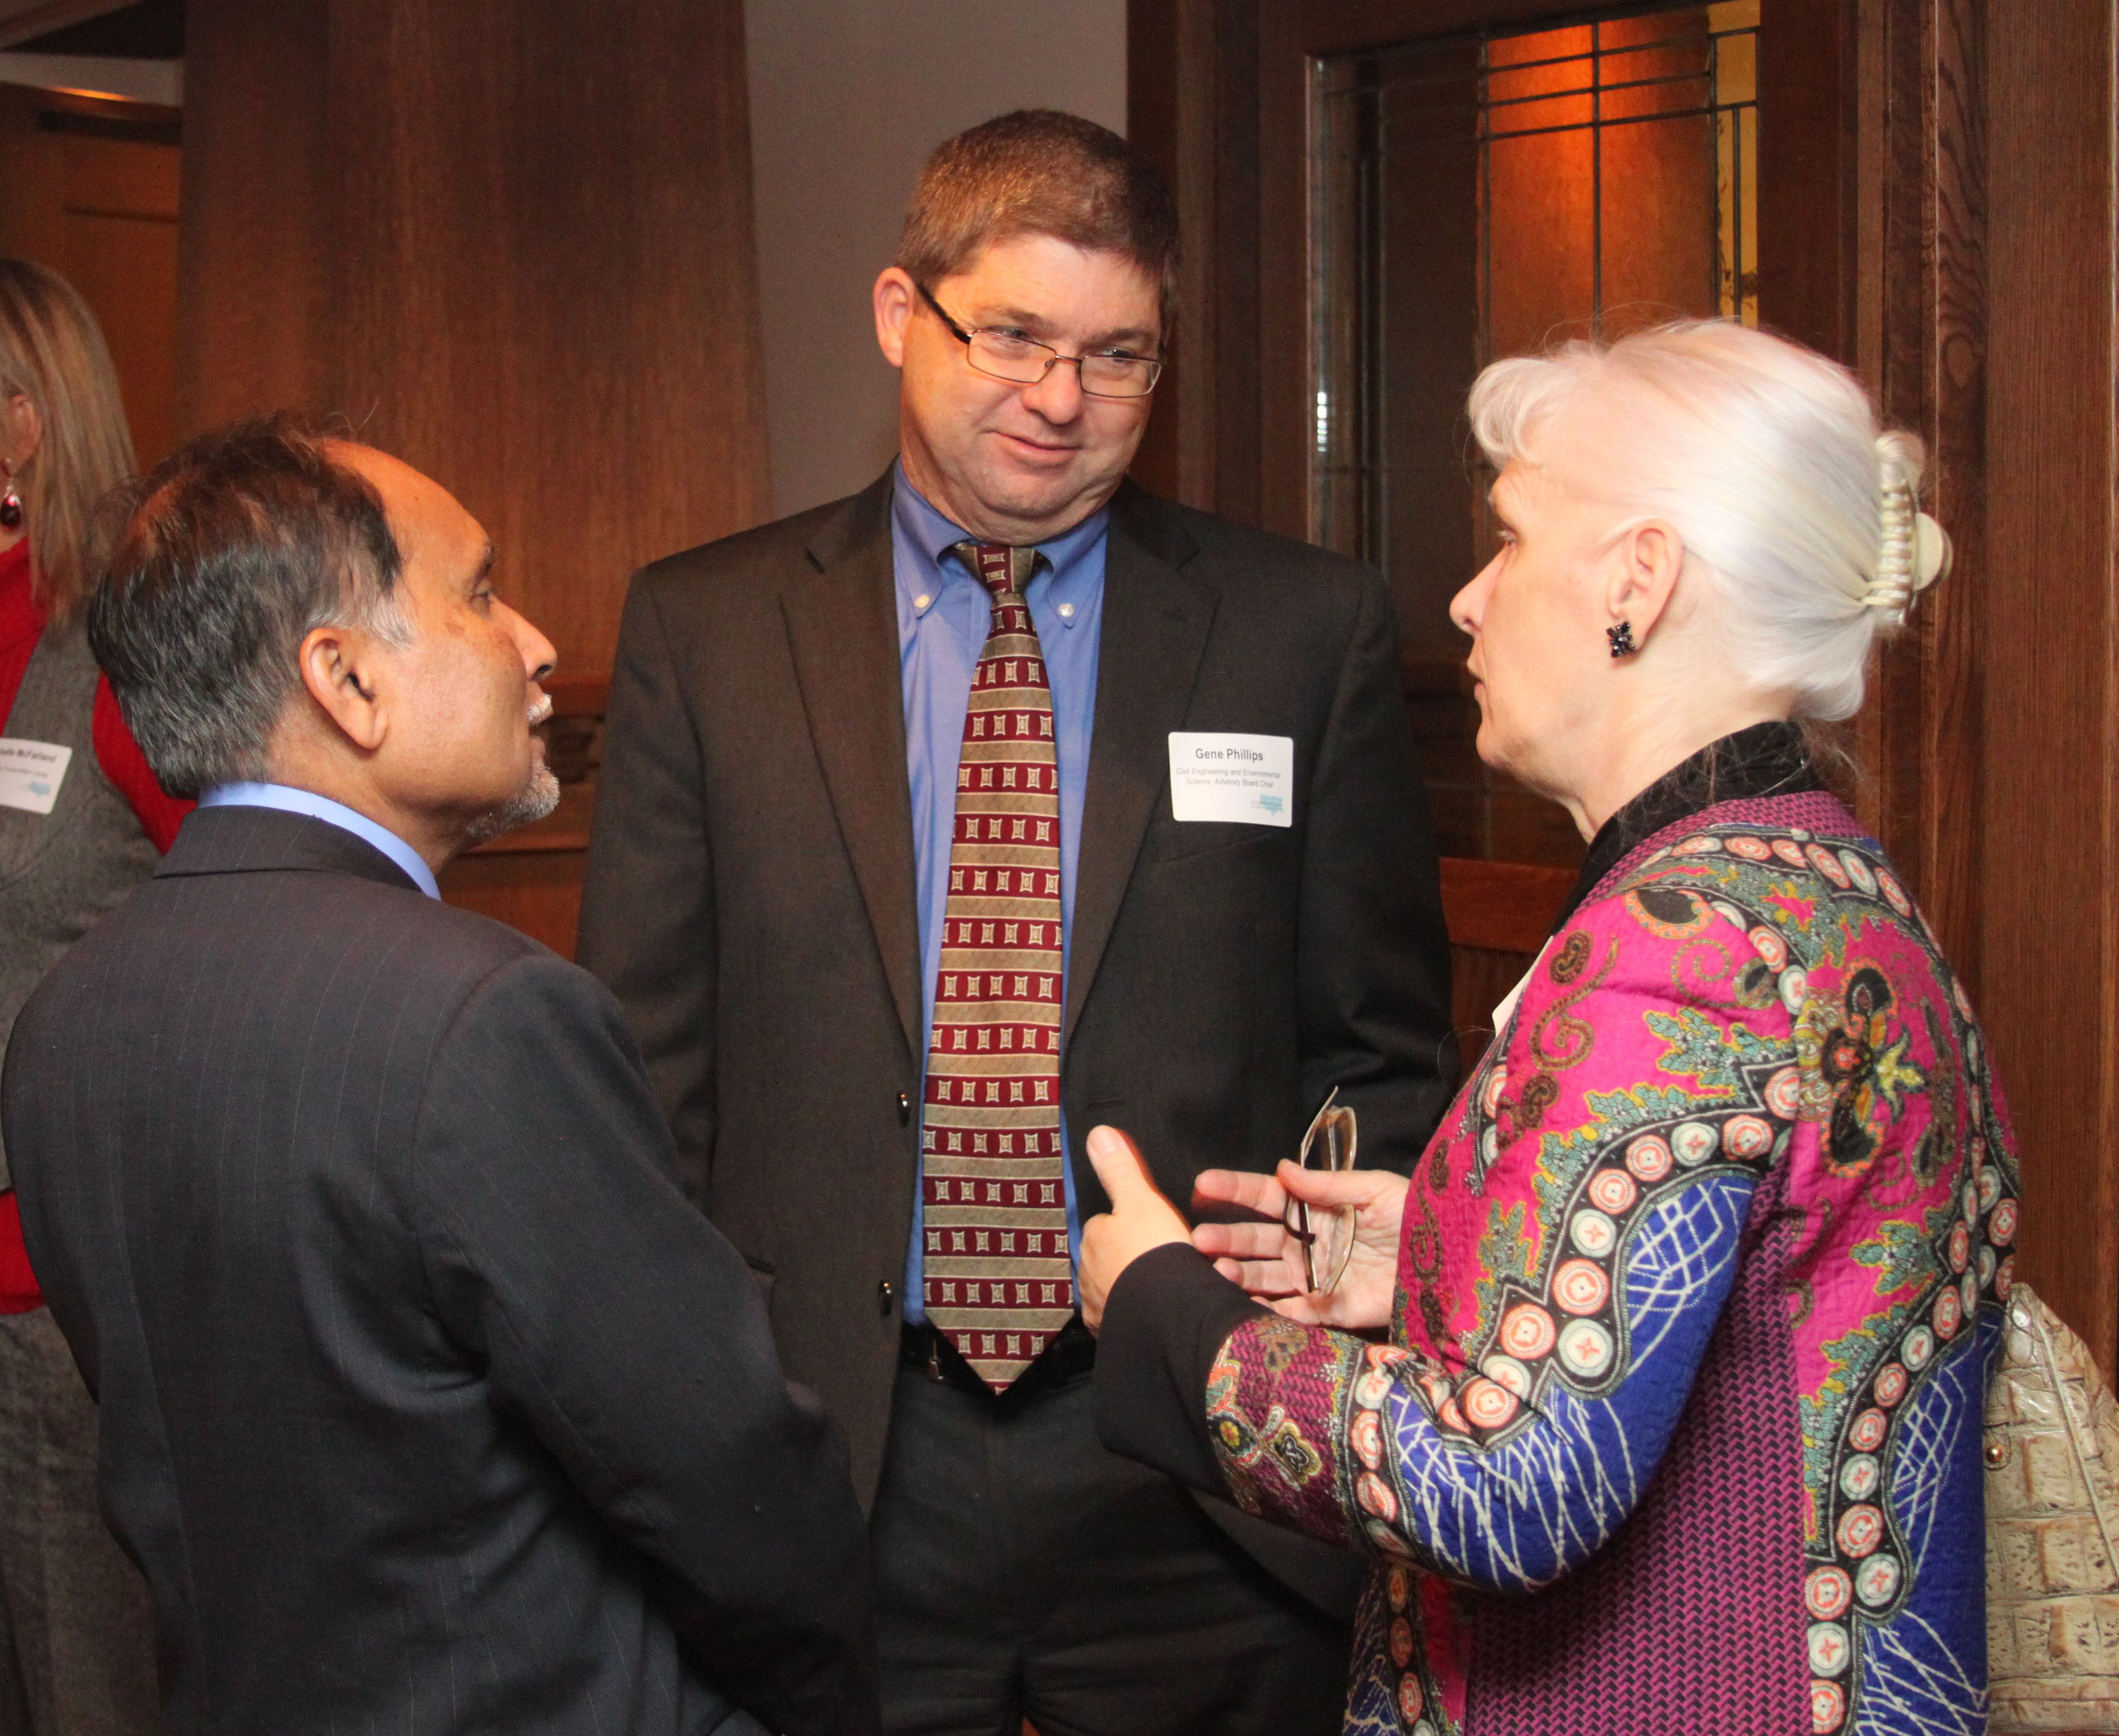 Dr. Zaman and Gene Phillips, Civil engineering alumnus, welcome OU Provost Nancy Mergler.